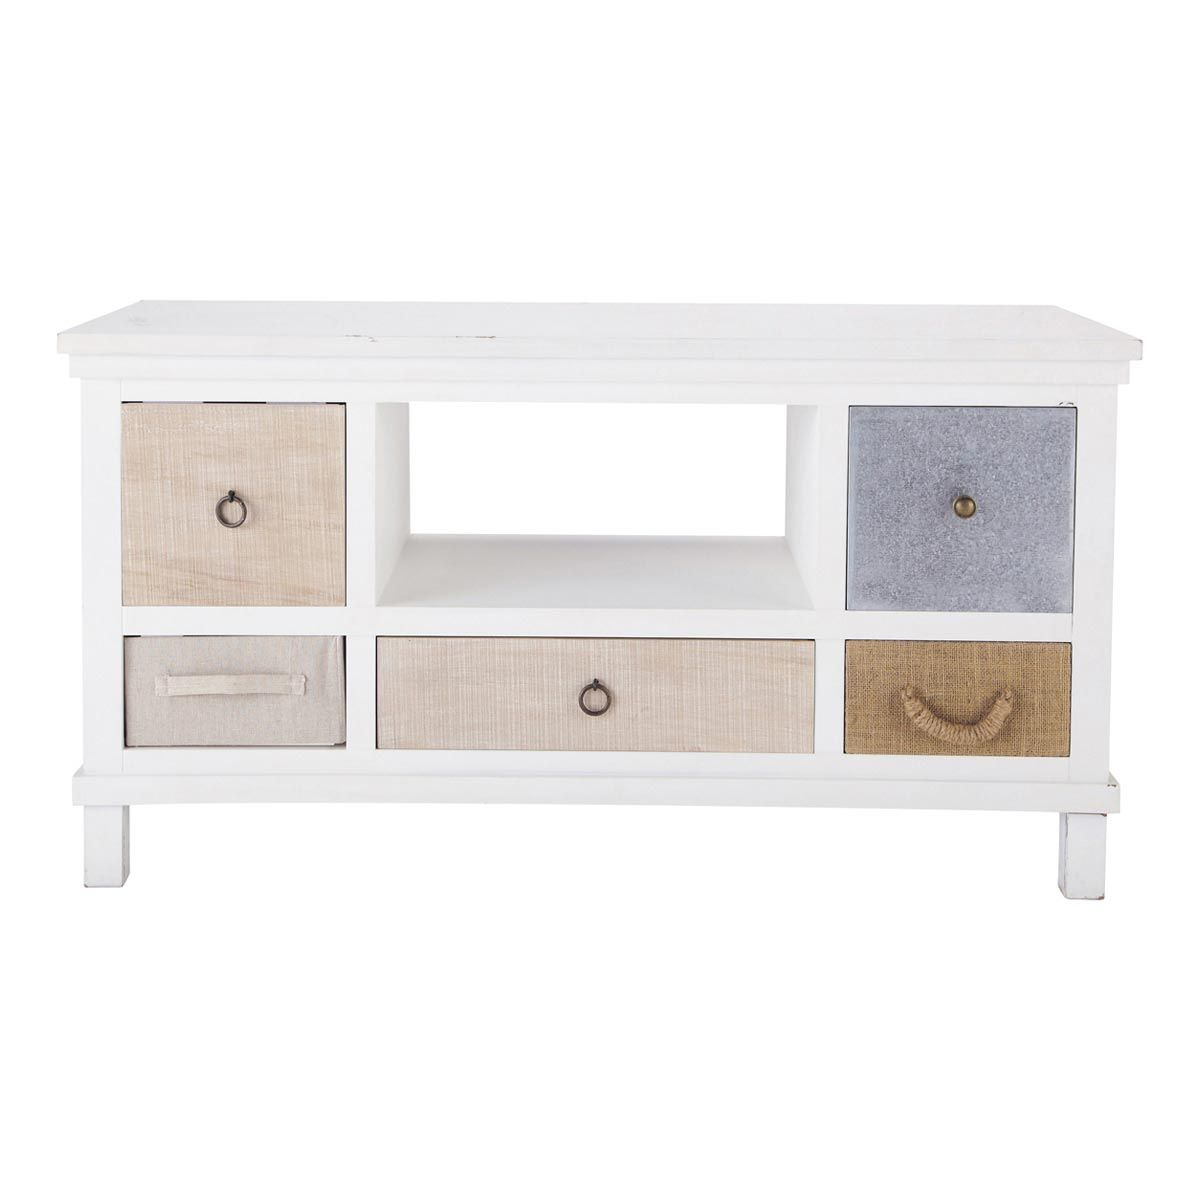 Meuble Tv 110 Cm Design Meuble Tv En Bois Blanc L110 Salon Tv Furniture White Tv